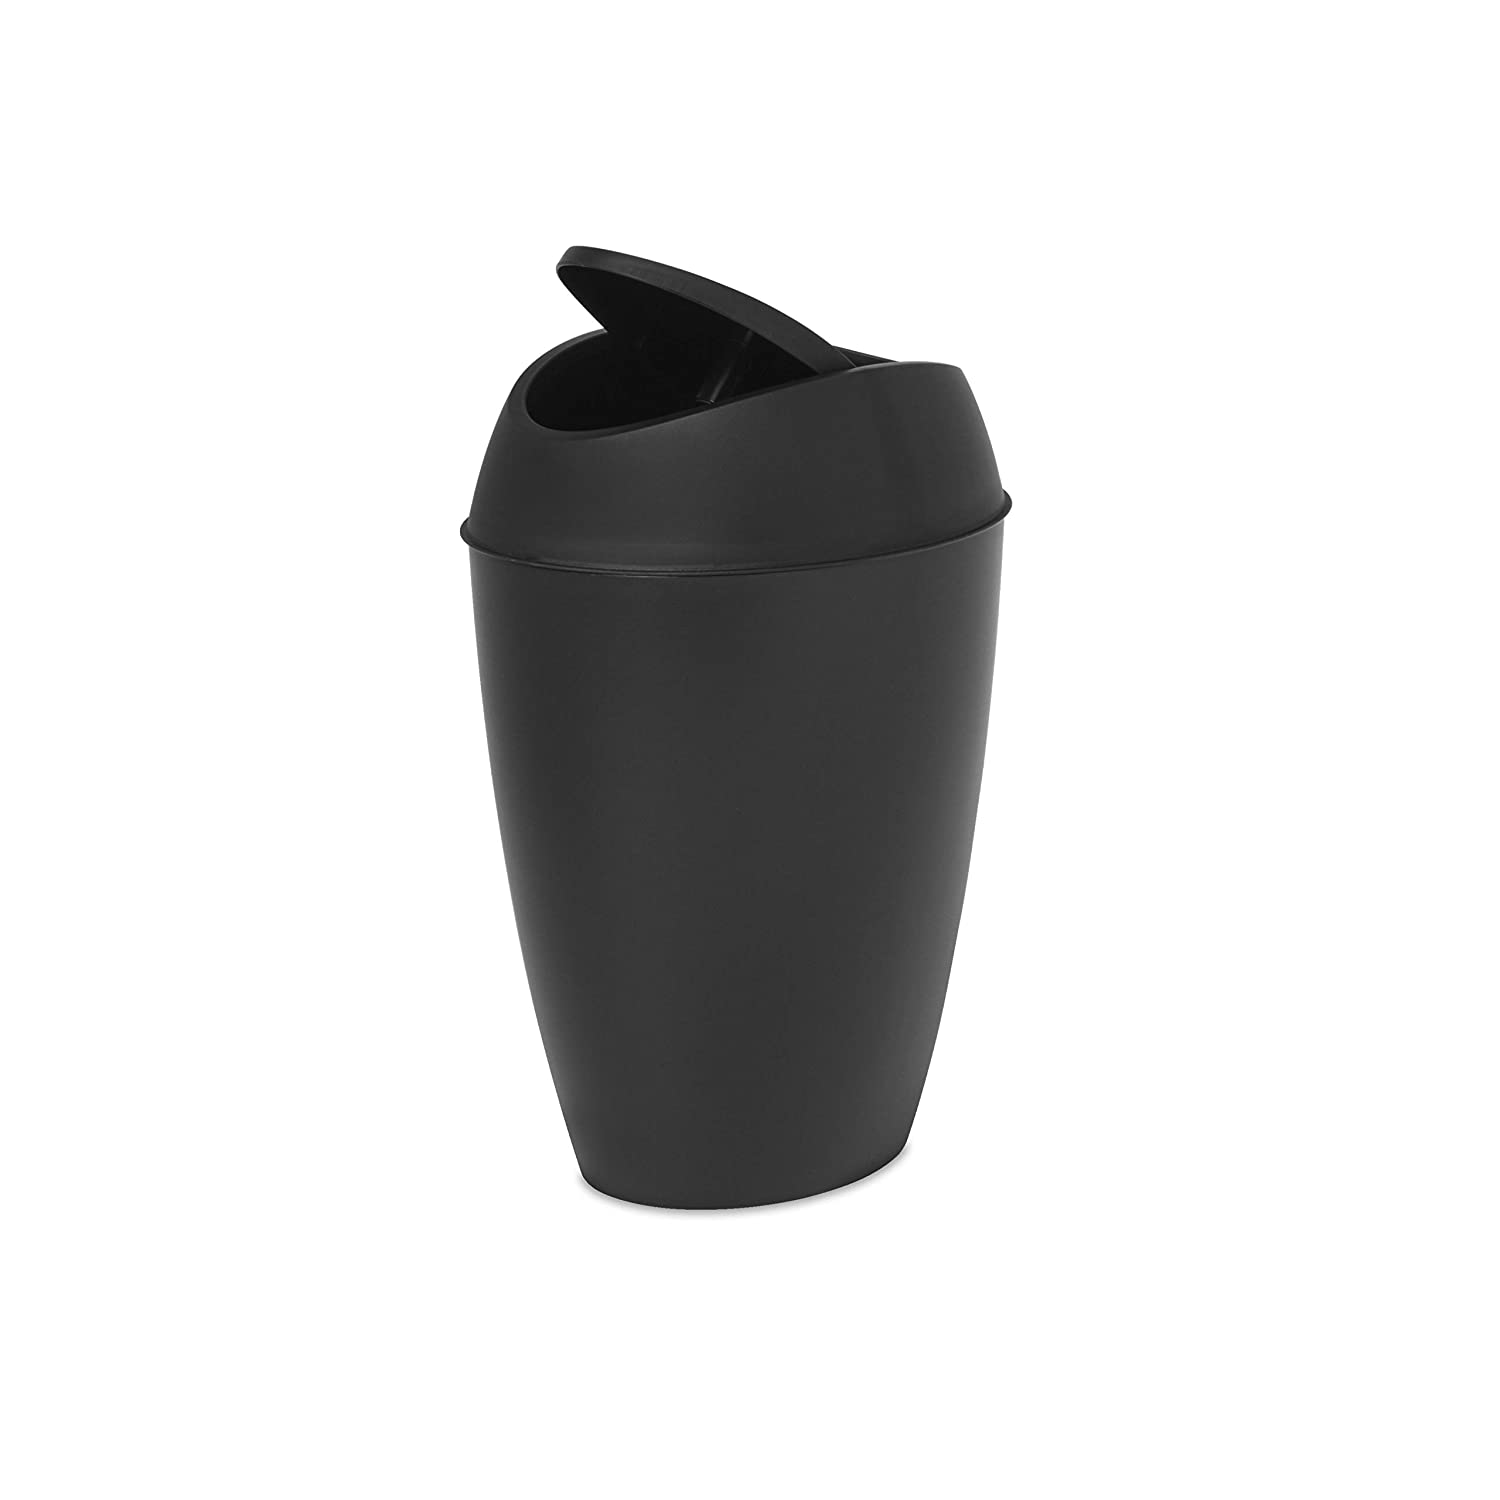 Umbra Twirla, 2.2 Gallon Trash Can with Swing-top Lid, Black